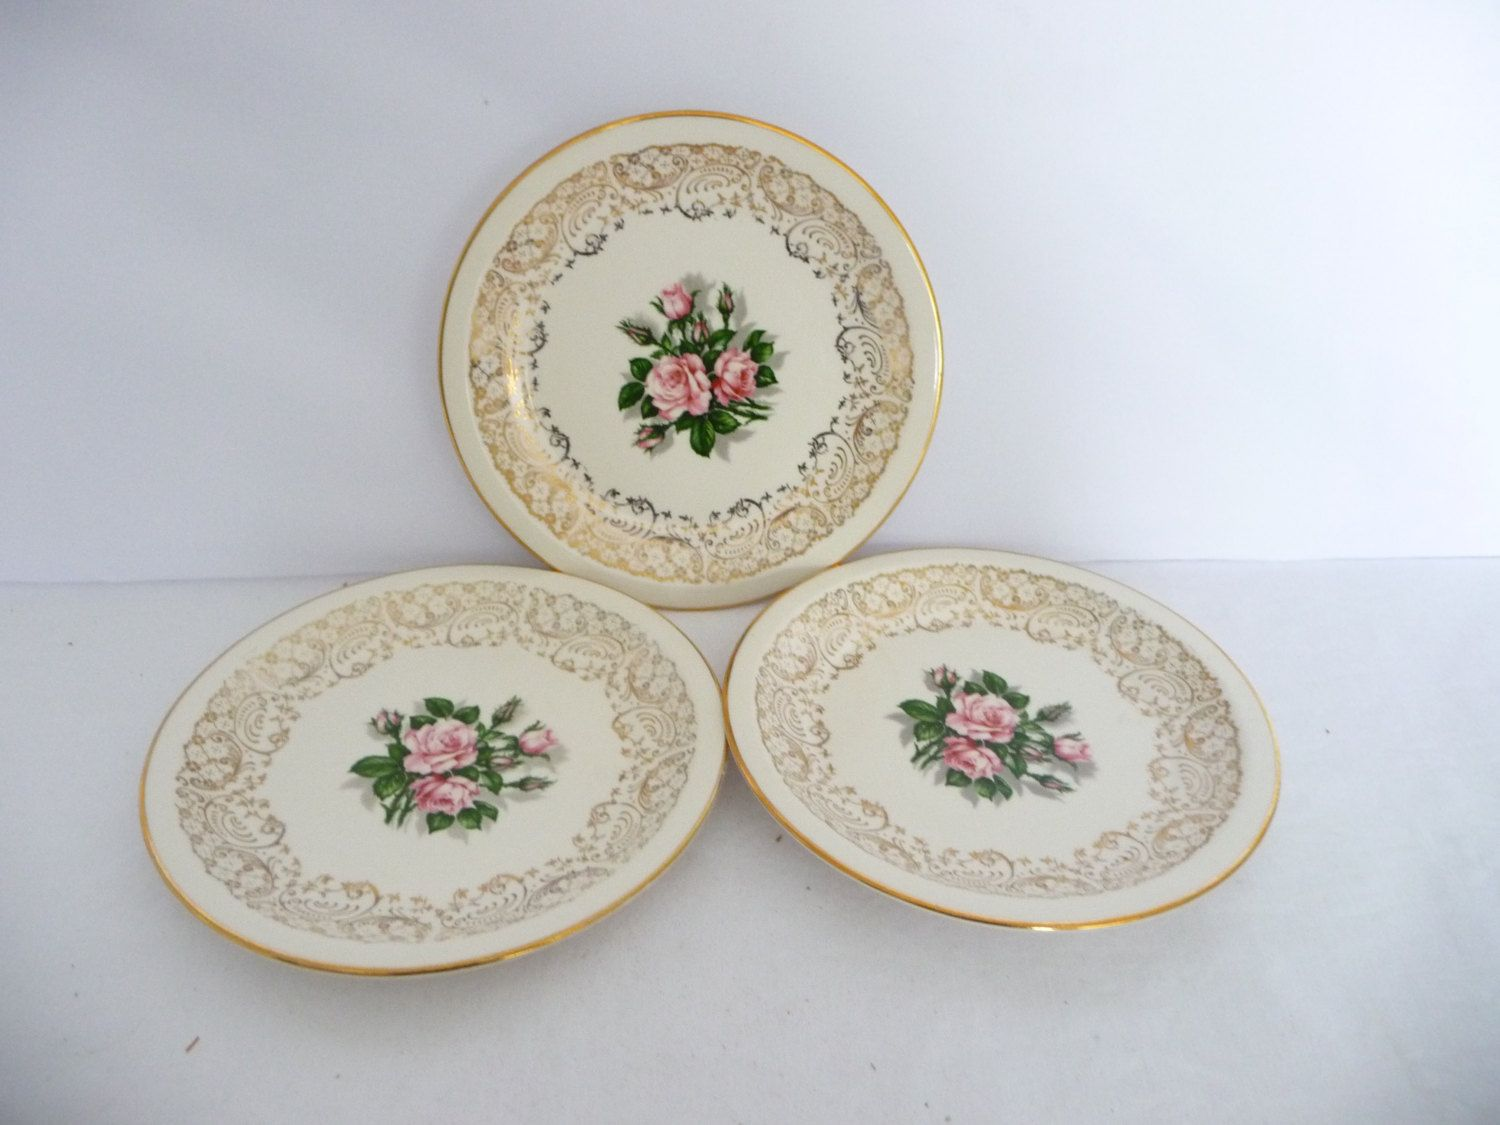 Georgian China - Tudor Rose Bread and Butter Plates Replacement Pieces by Saltofmotherearth on Etsy & Georgian China - Tudor Rose Bread and Butter Plates Replacement ...